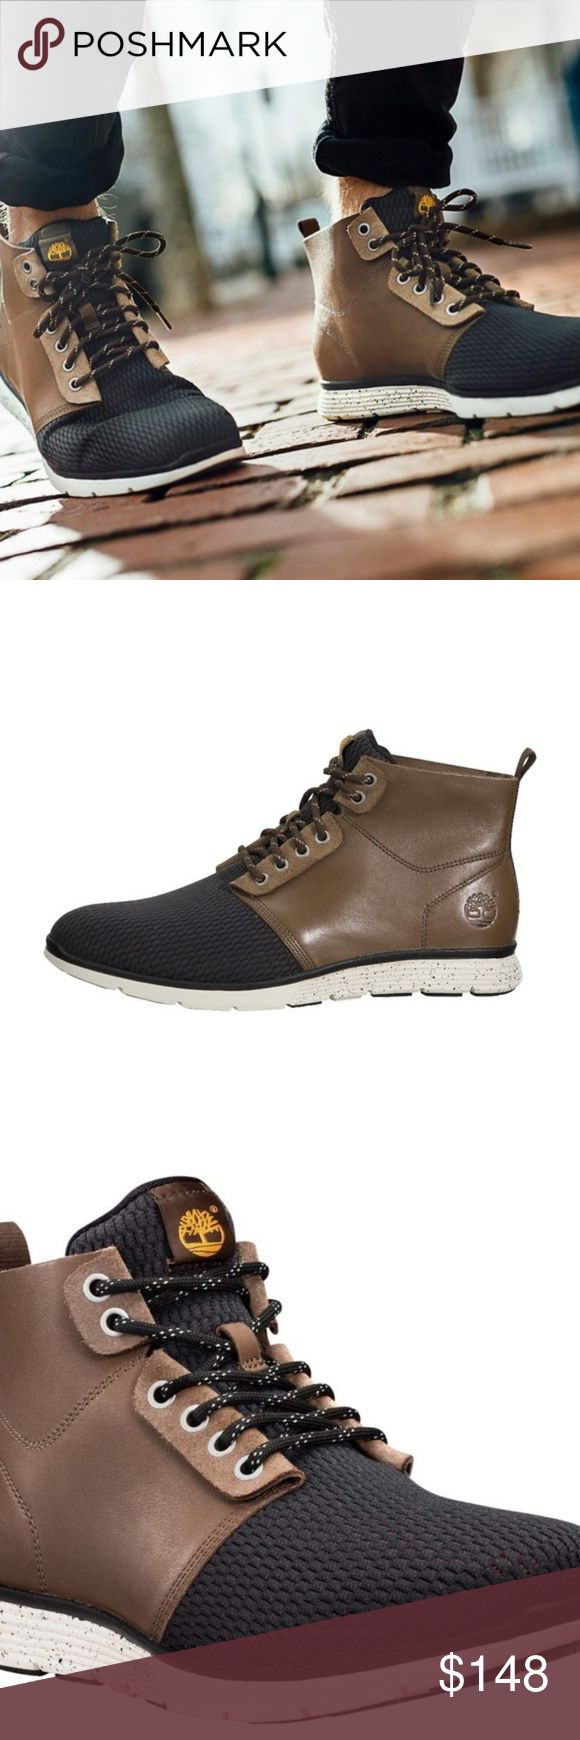 NEW TIMBERLAND Killington Brown Leather Chukka 11 NEW TIMBERLAND Killington Brown Leather Chukka 11, which is 45 UK This colorway is sold out so we are asking slightly less than the $175 on amazon. Timberland Shoes Chukka Boots